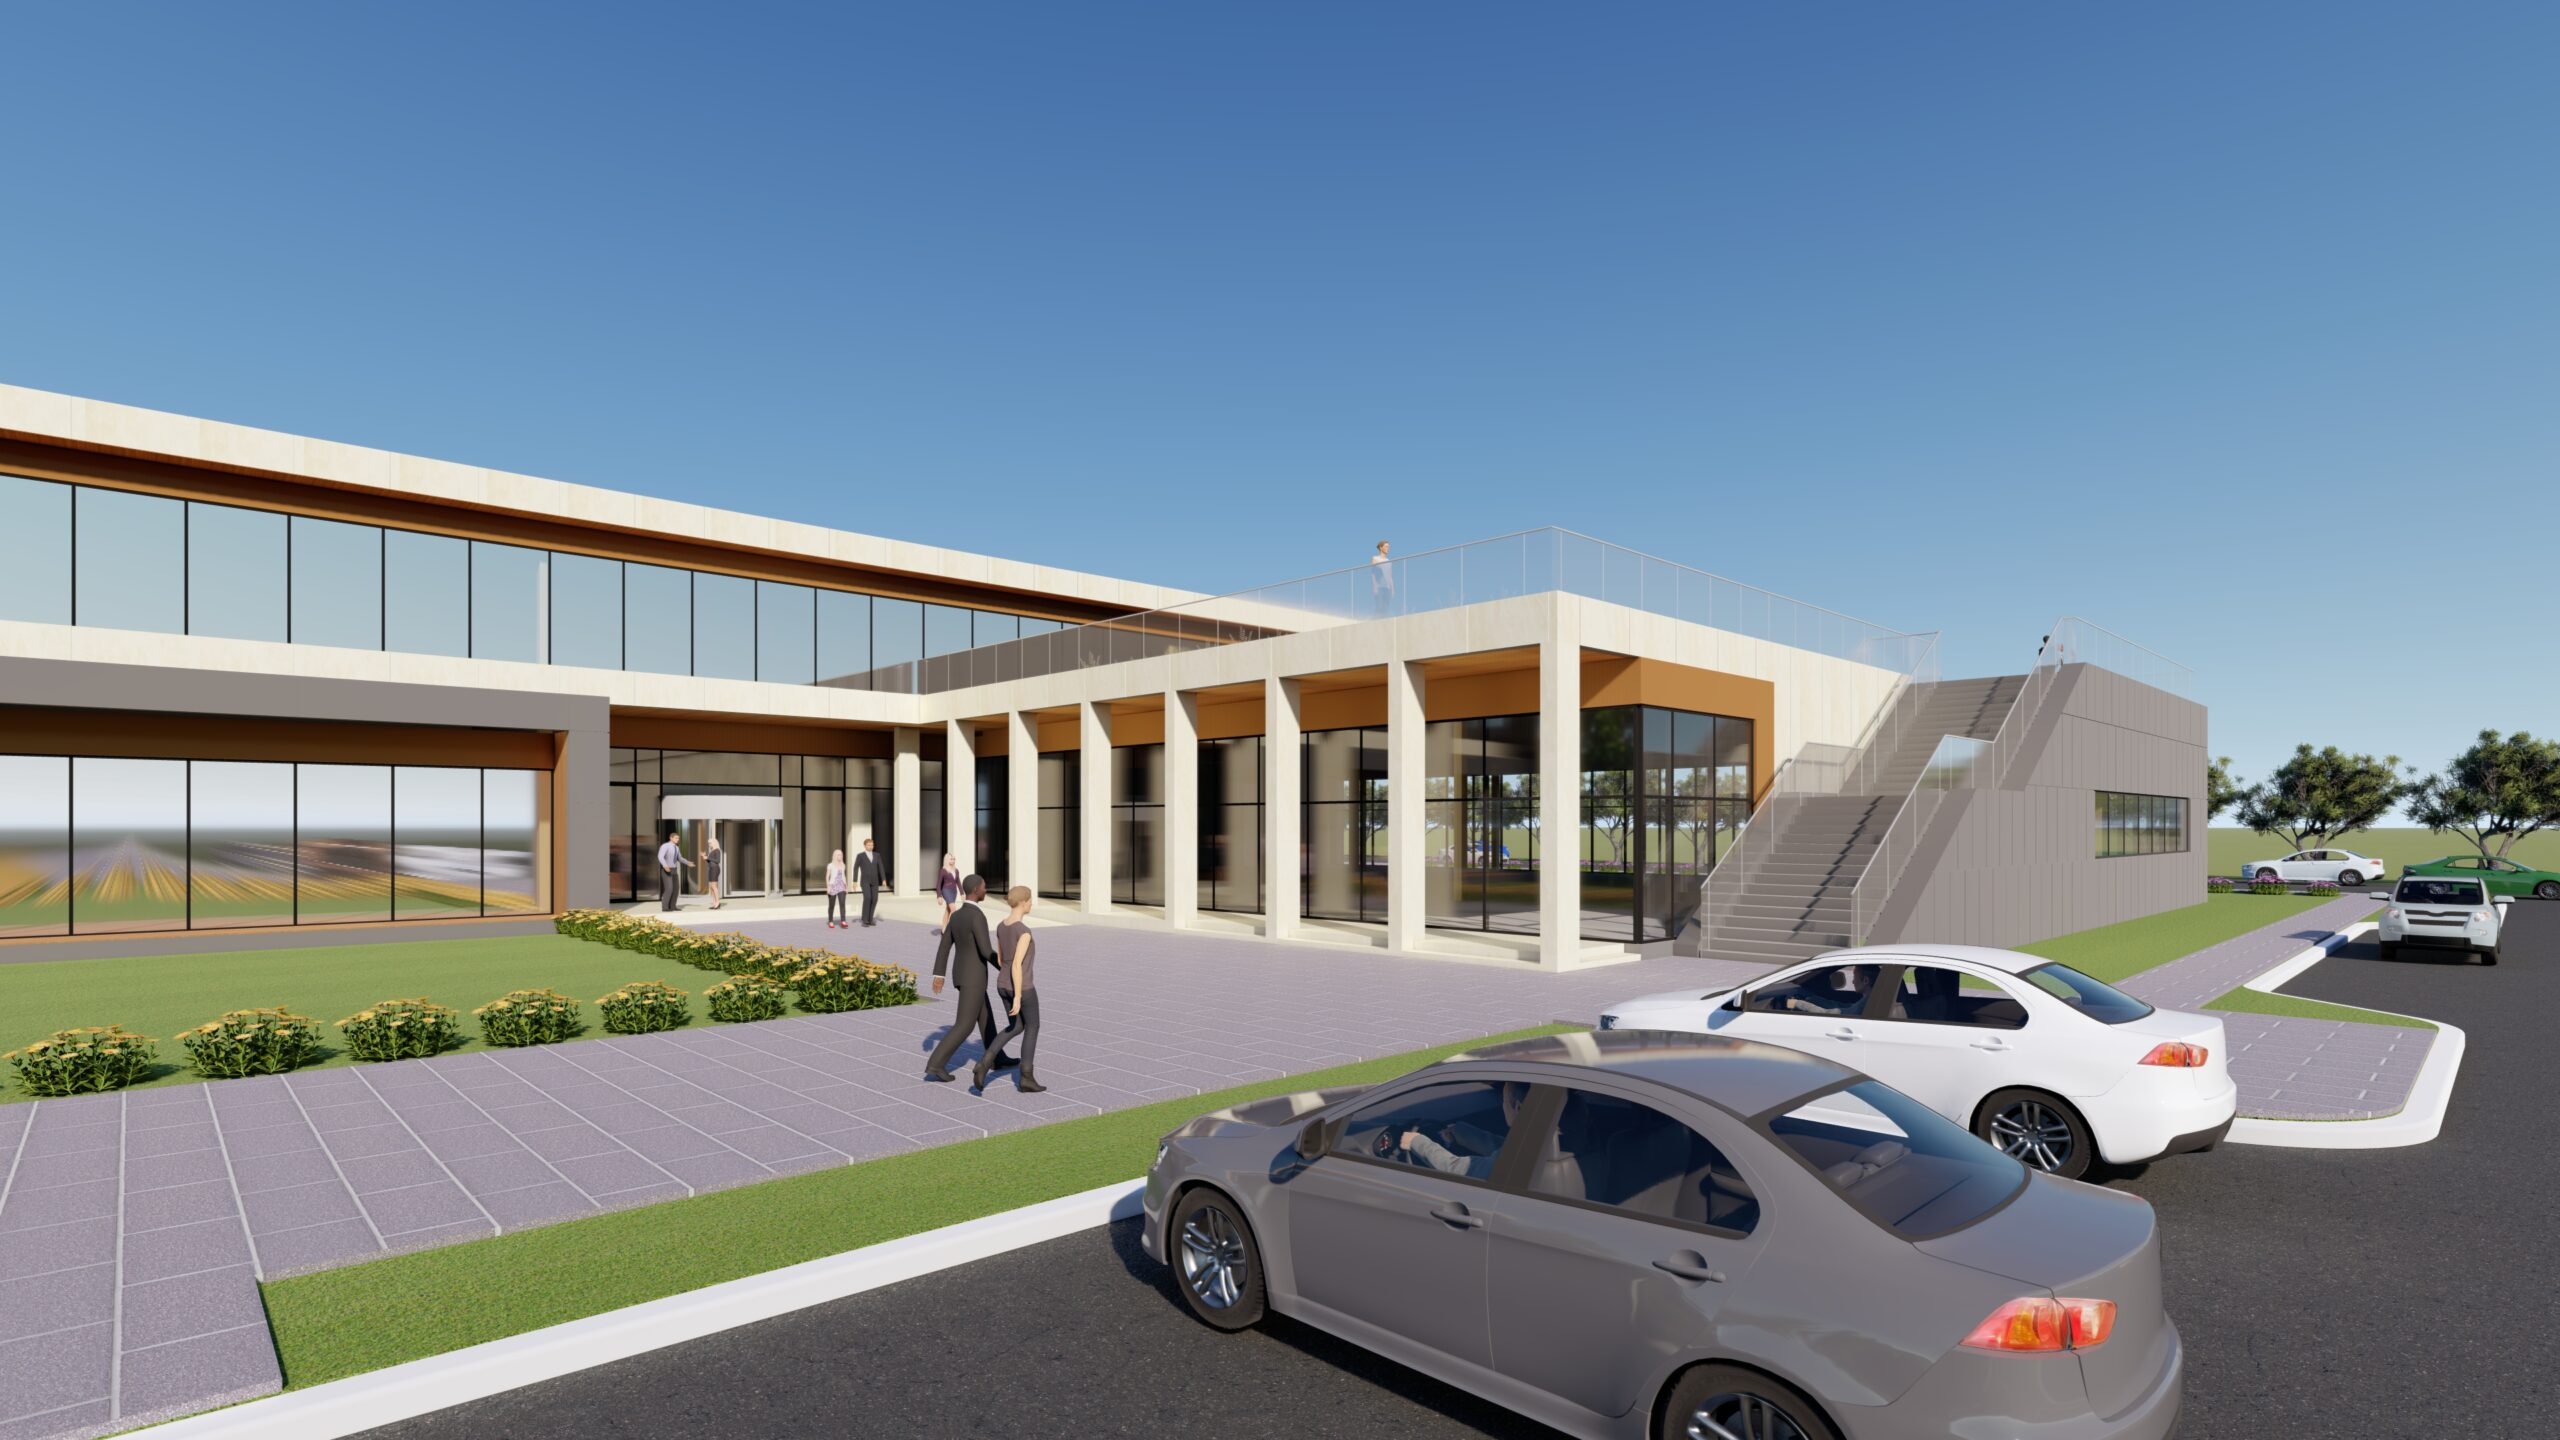 20-06-22-Office-Bldg-F_3d-rendering_5-Photo_add-to-web-scaled